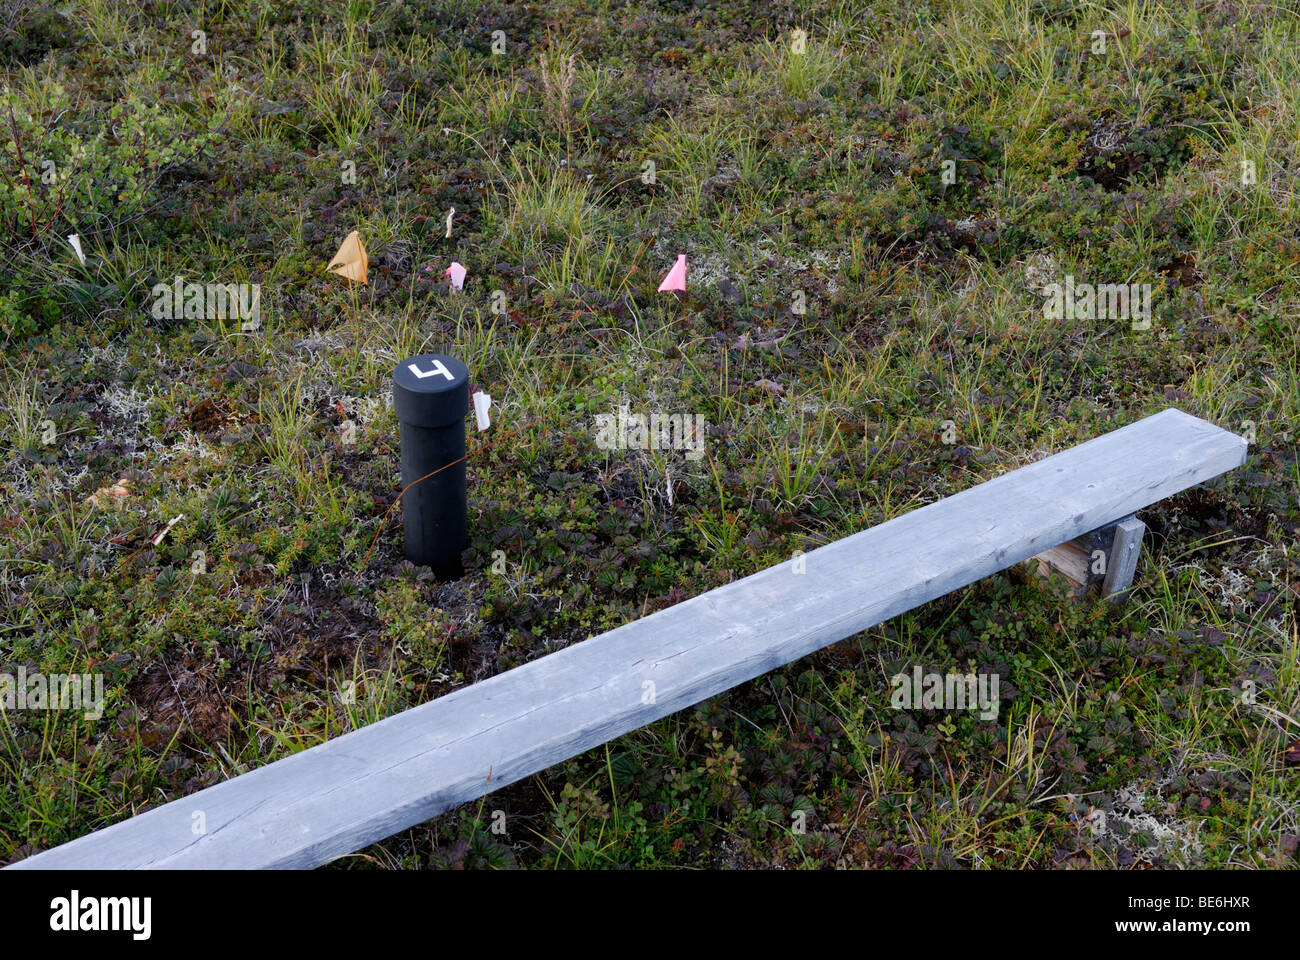 Tundra permafrost climate change long-term research site. A pipe allows access to CO2 gases released by melting - Stock Image